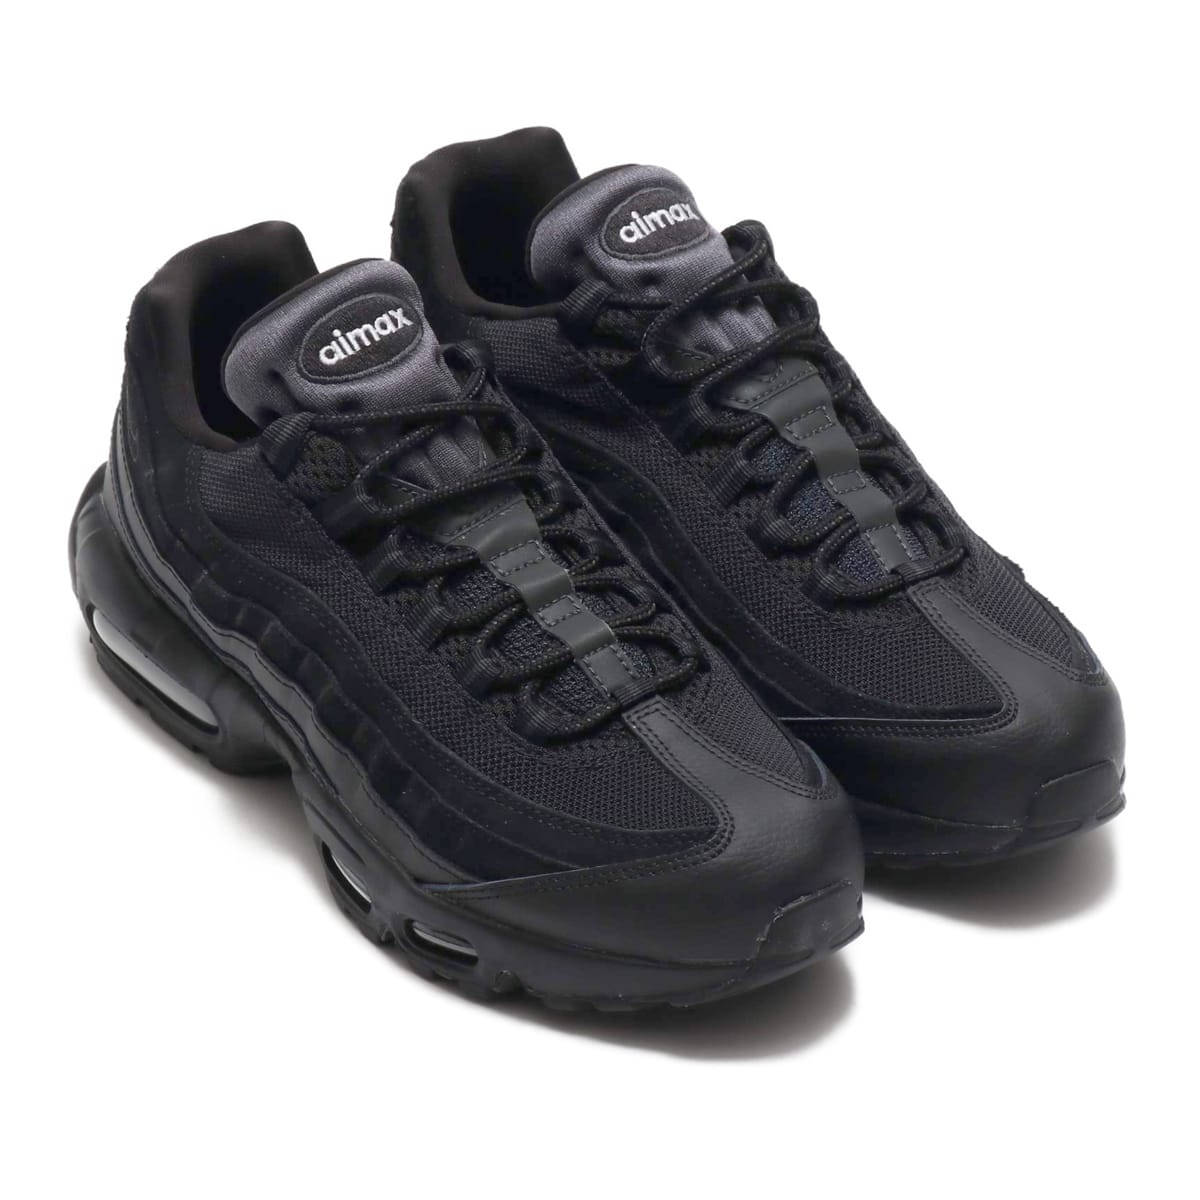 NIKE AIR MAX 95 ESSENTIAL BLACK/BLACK-ANTHRACITE-WHITE 19FA-I_photo_large